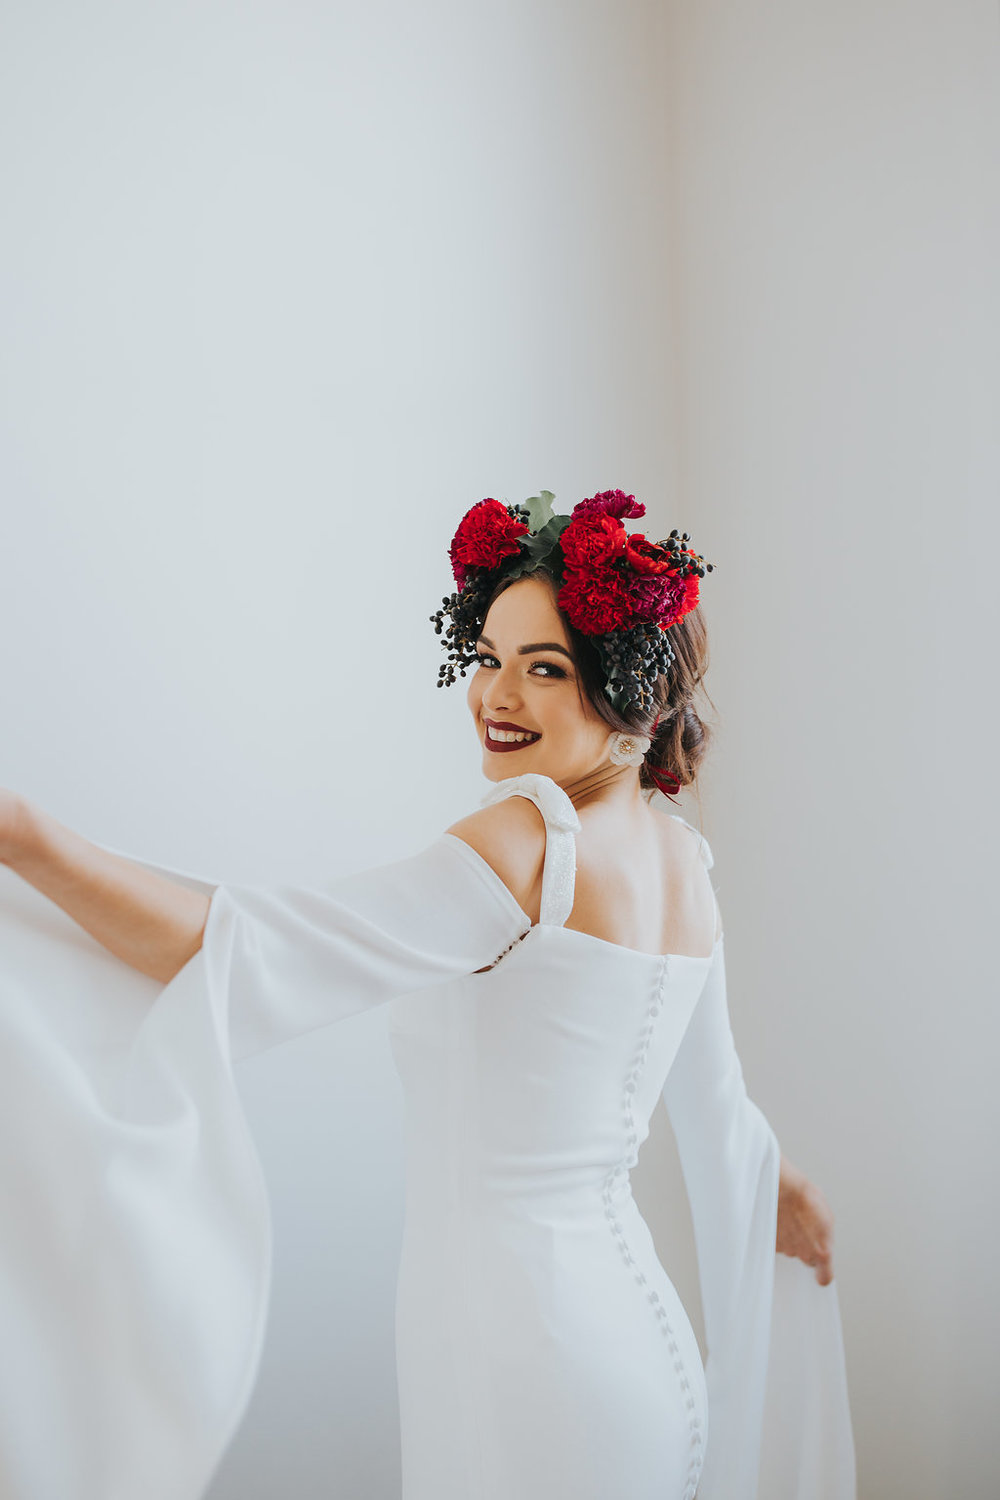 White Lily Couture collaborated with Mallory Sparkles Photography featuring gowns from the Spanish bridal powerhouse Rosa Clará.